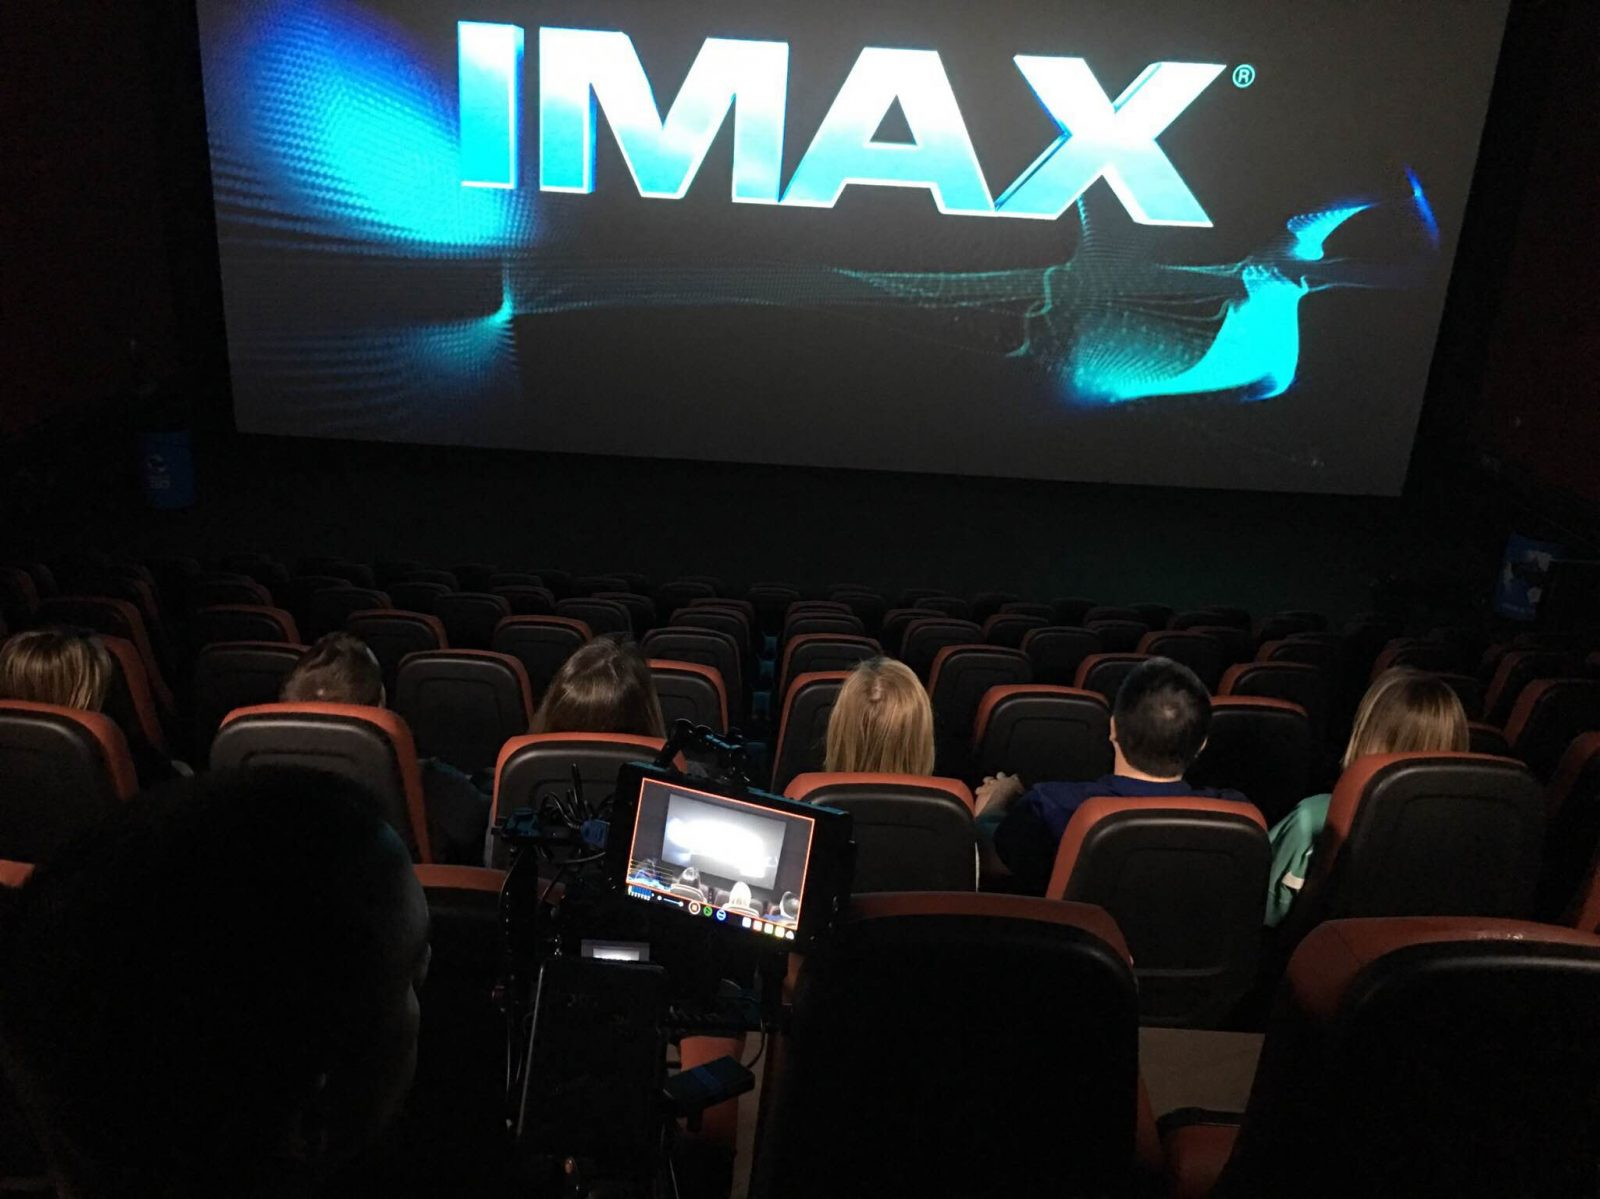 imax at the new carnival vista